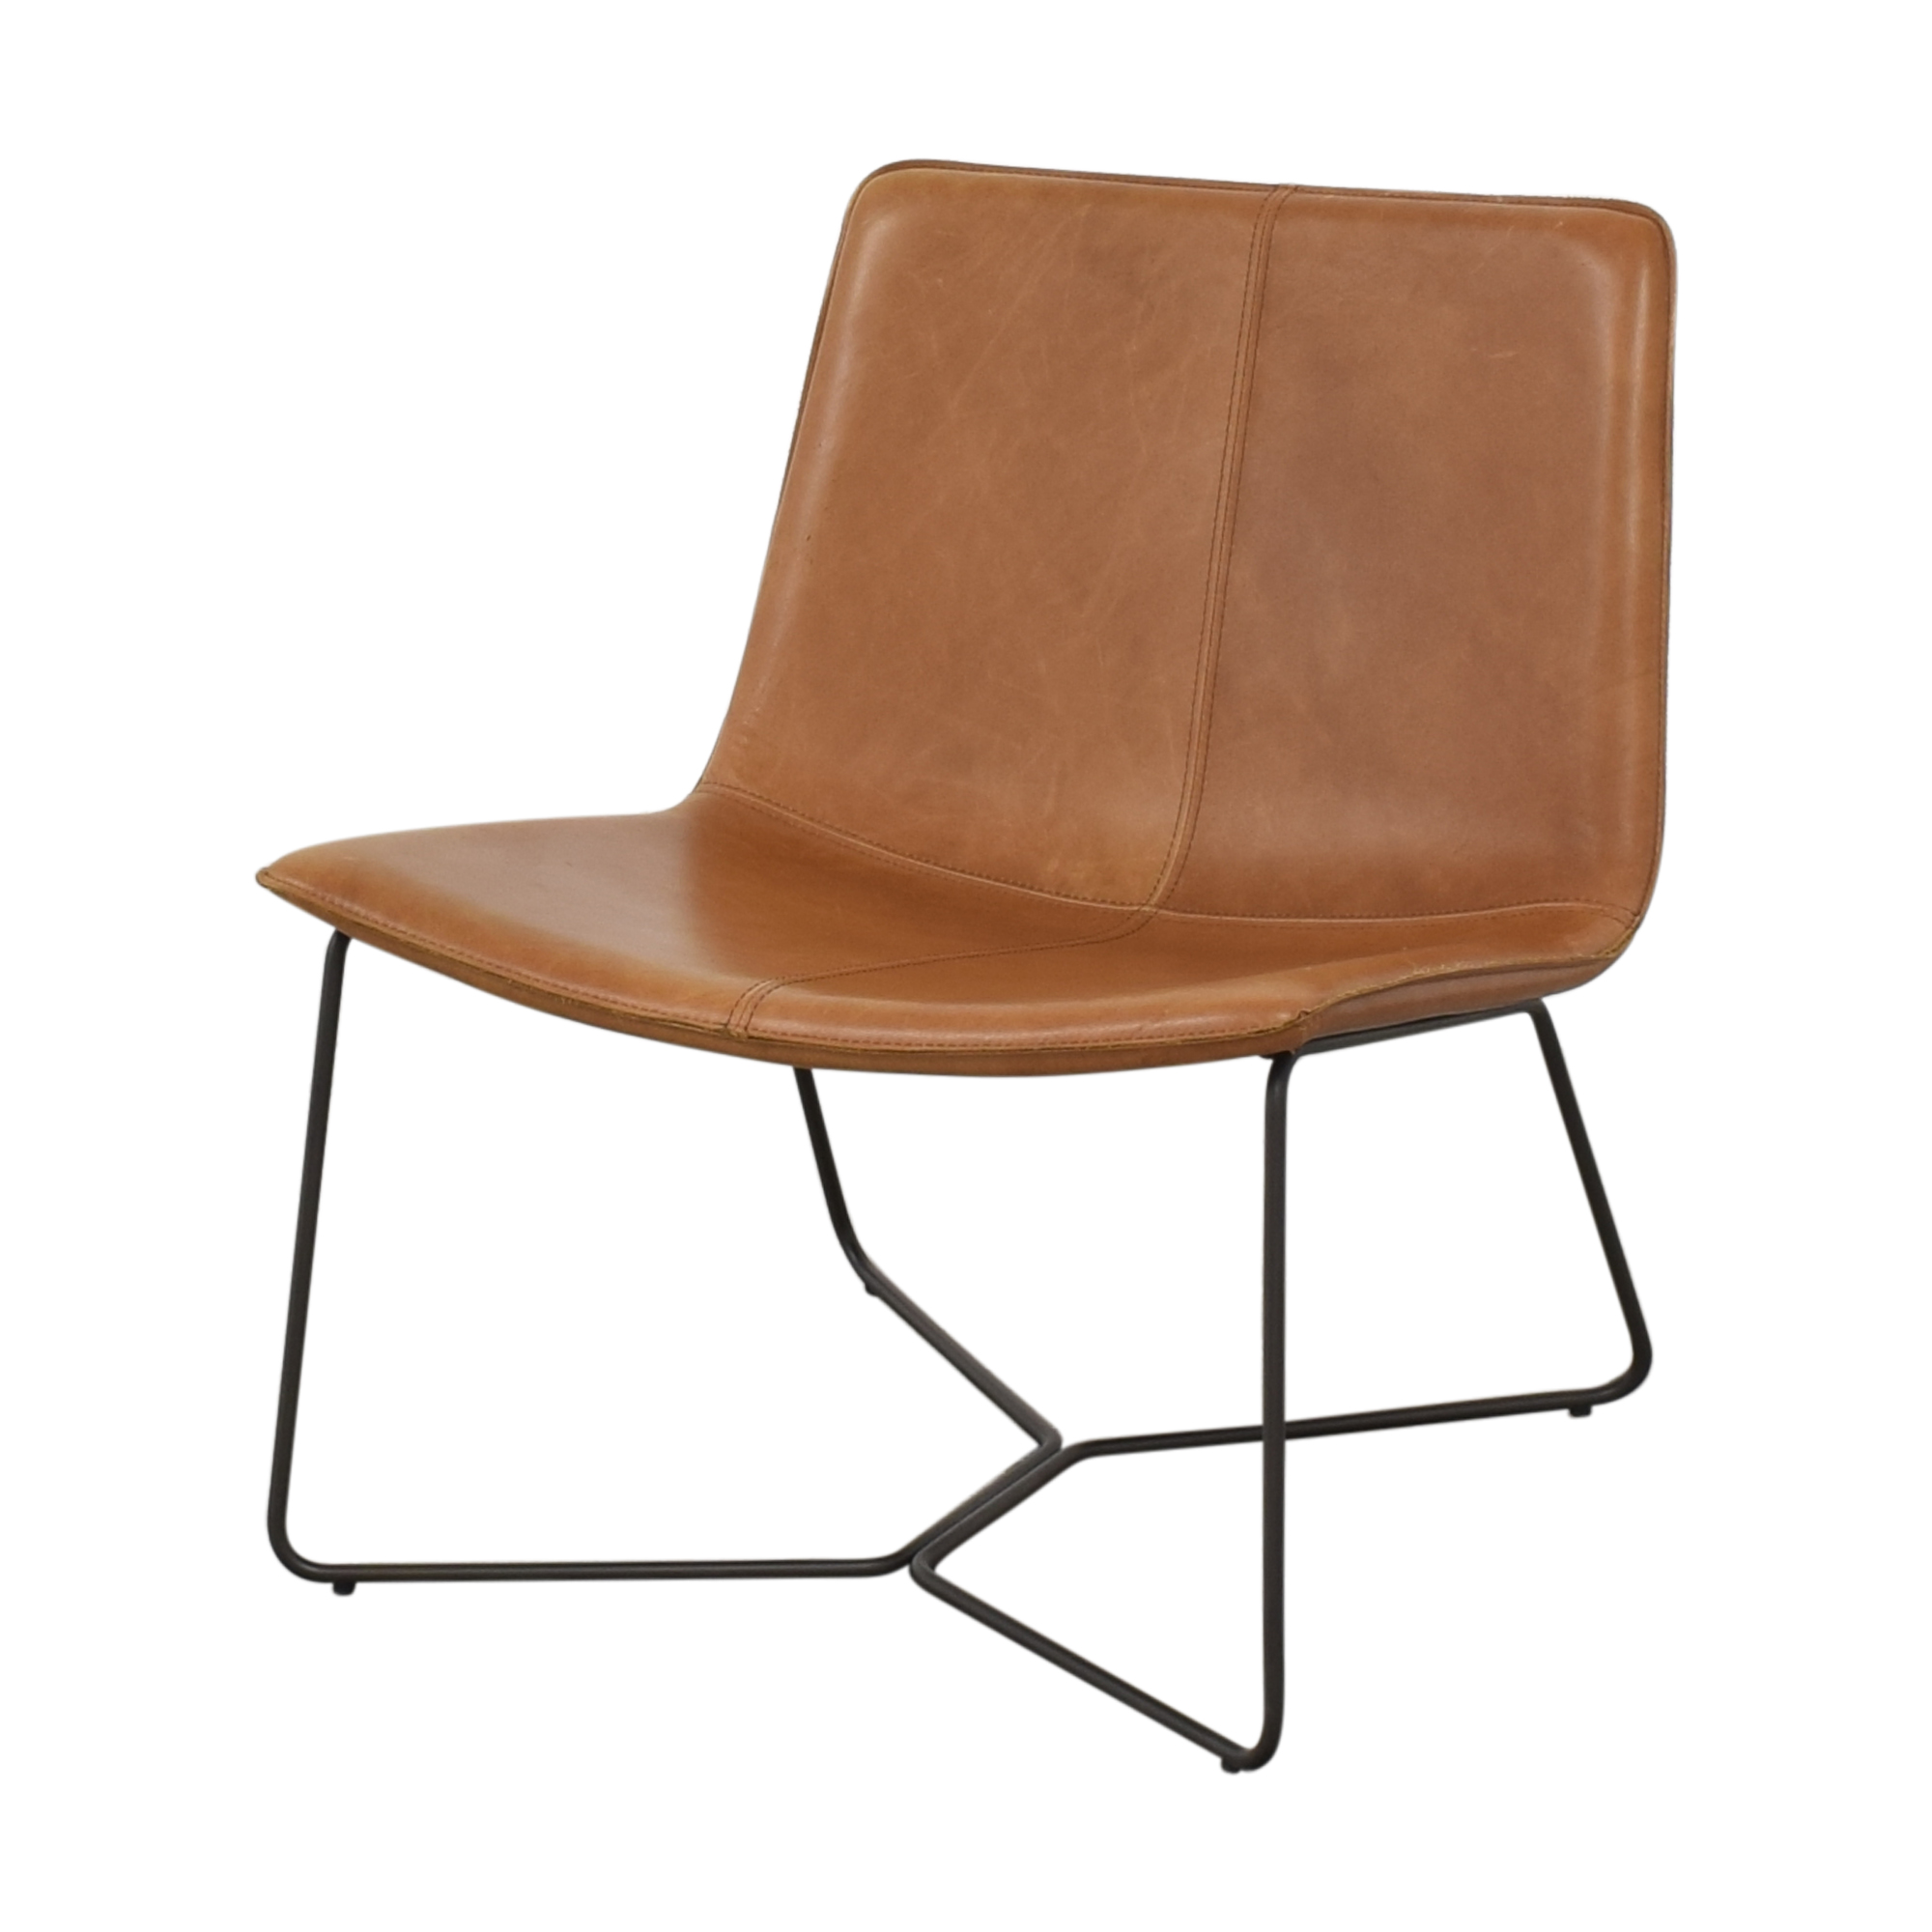 West Elm West Elm Slope Leather Lounge Chair pa